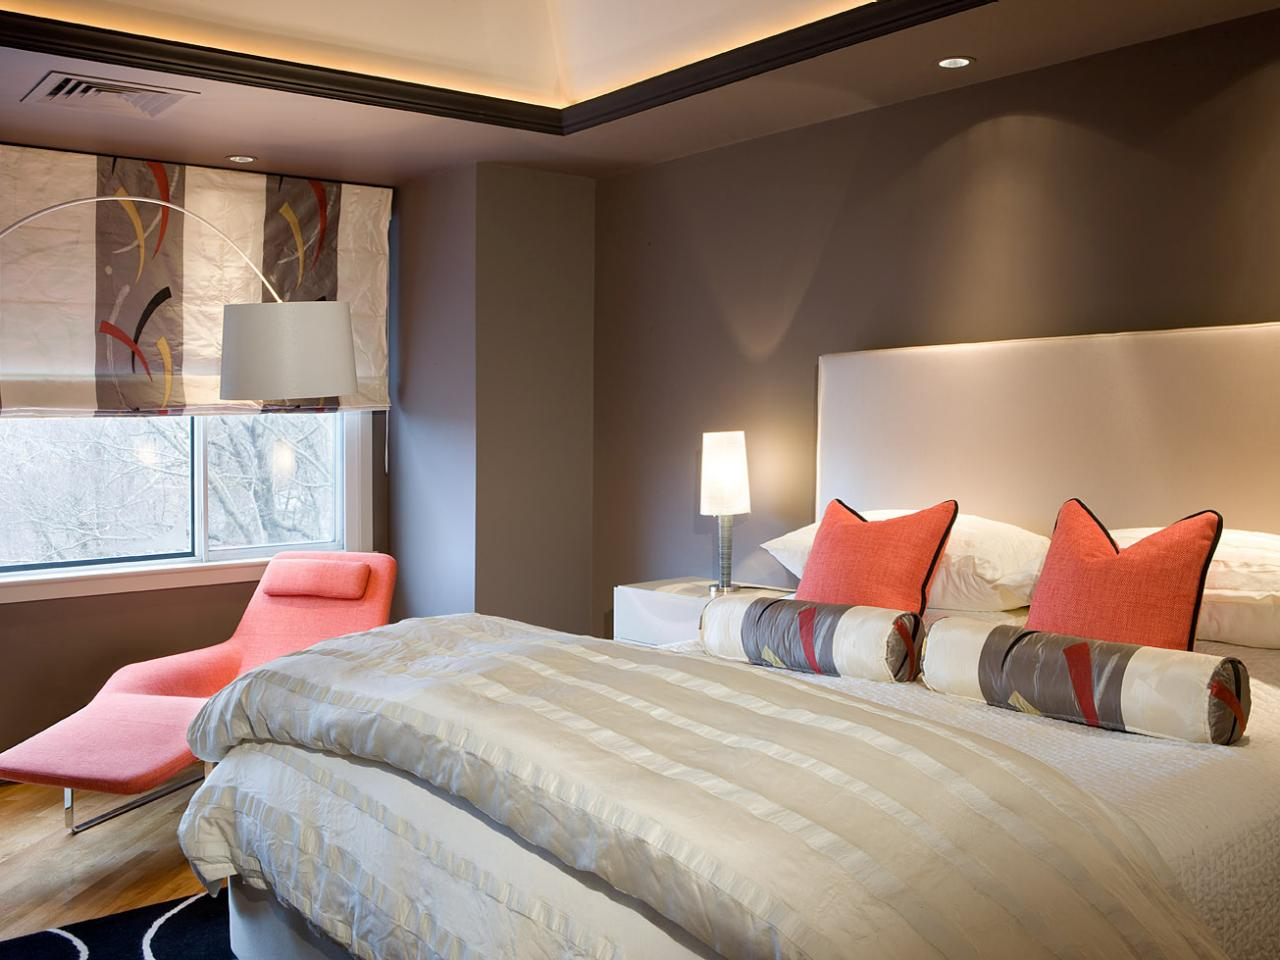 Images of A Hint of Lime bedroom wall colour ideas